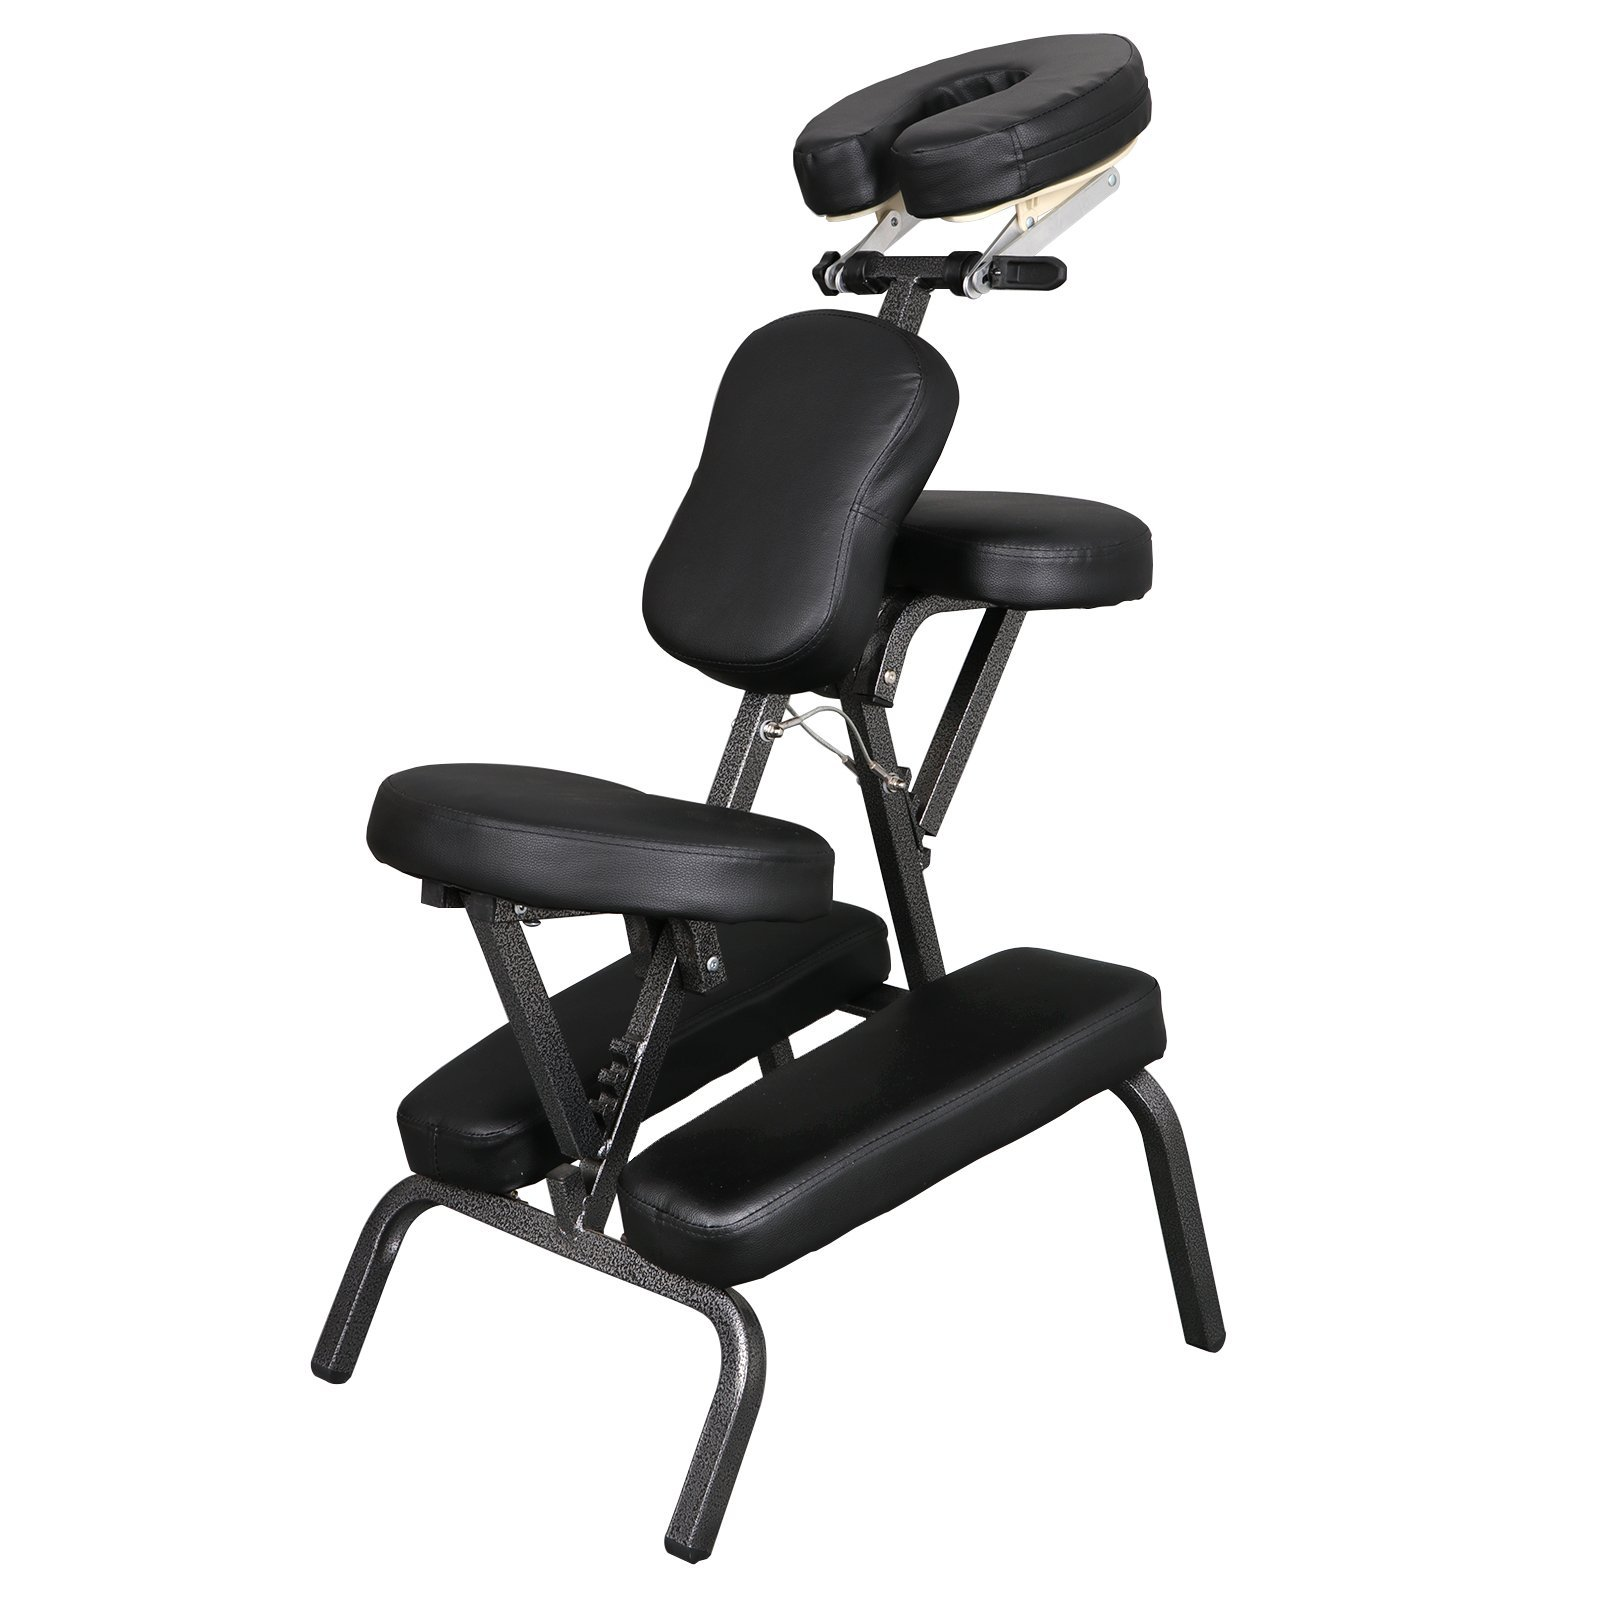 Portable Light Weight Massage Chair Leather Pad Travel Massage Tattoo Spa Chair w/Carrying Bag